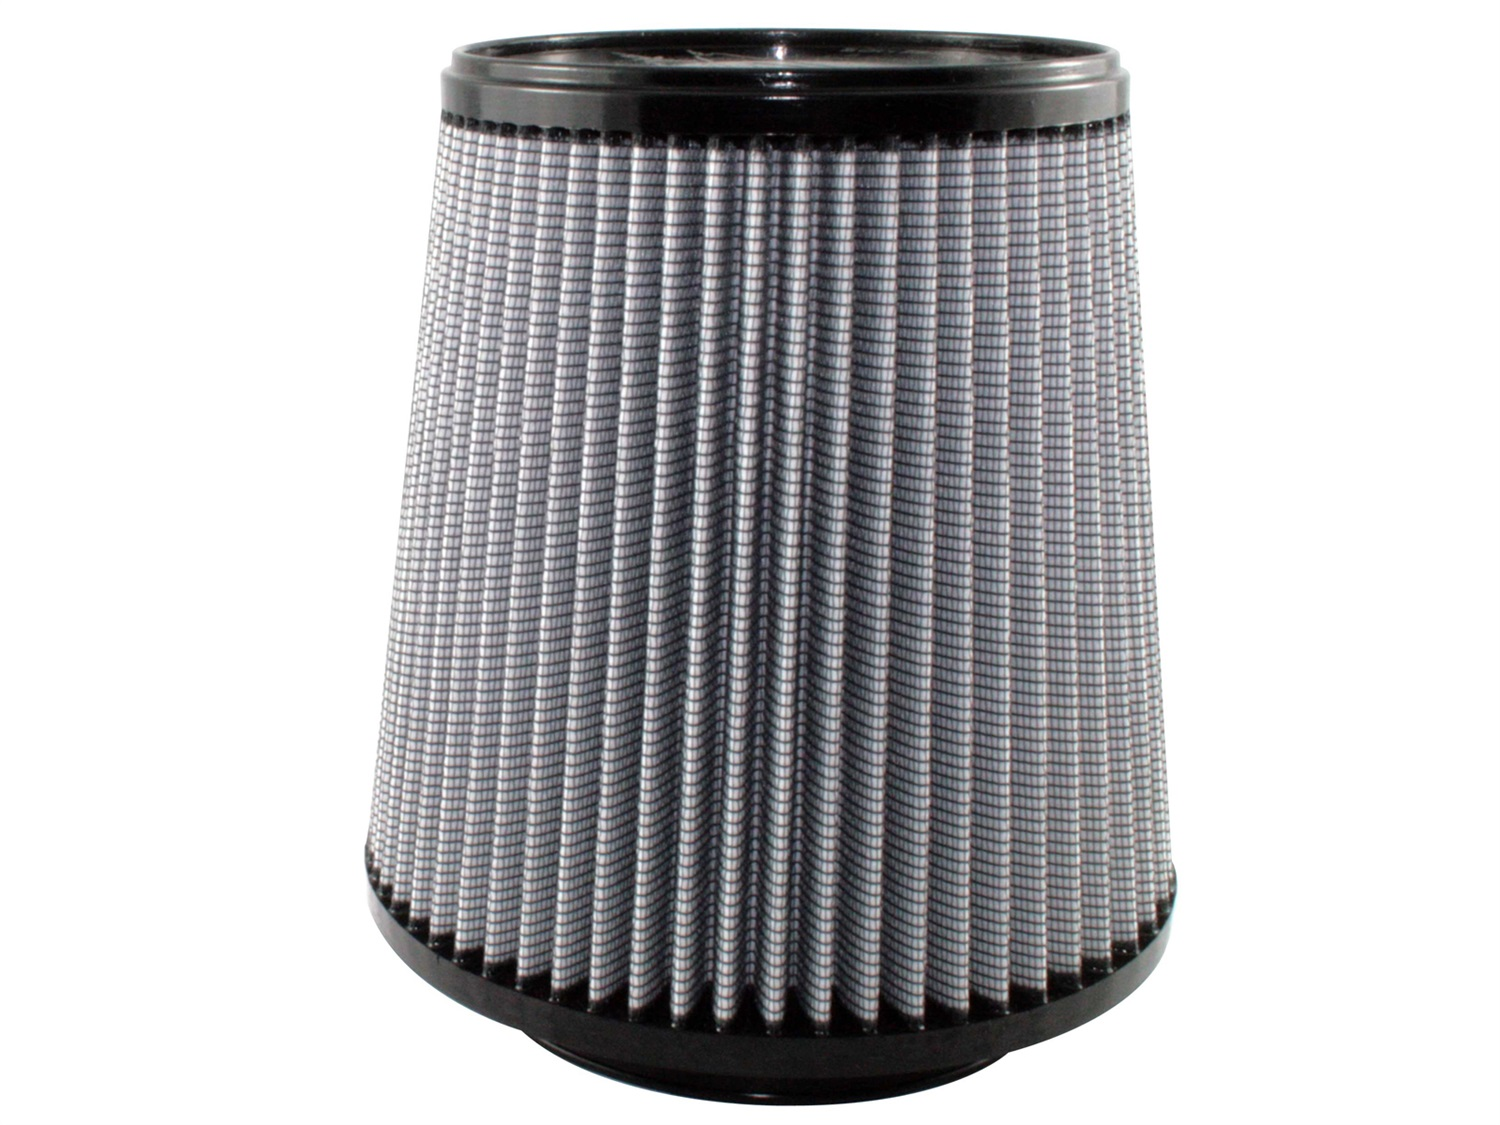 aFe Power 21-90021 MagnumFLOW Intake PRO DRY S Air Filter 21-90021